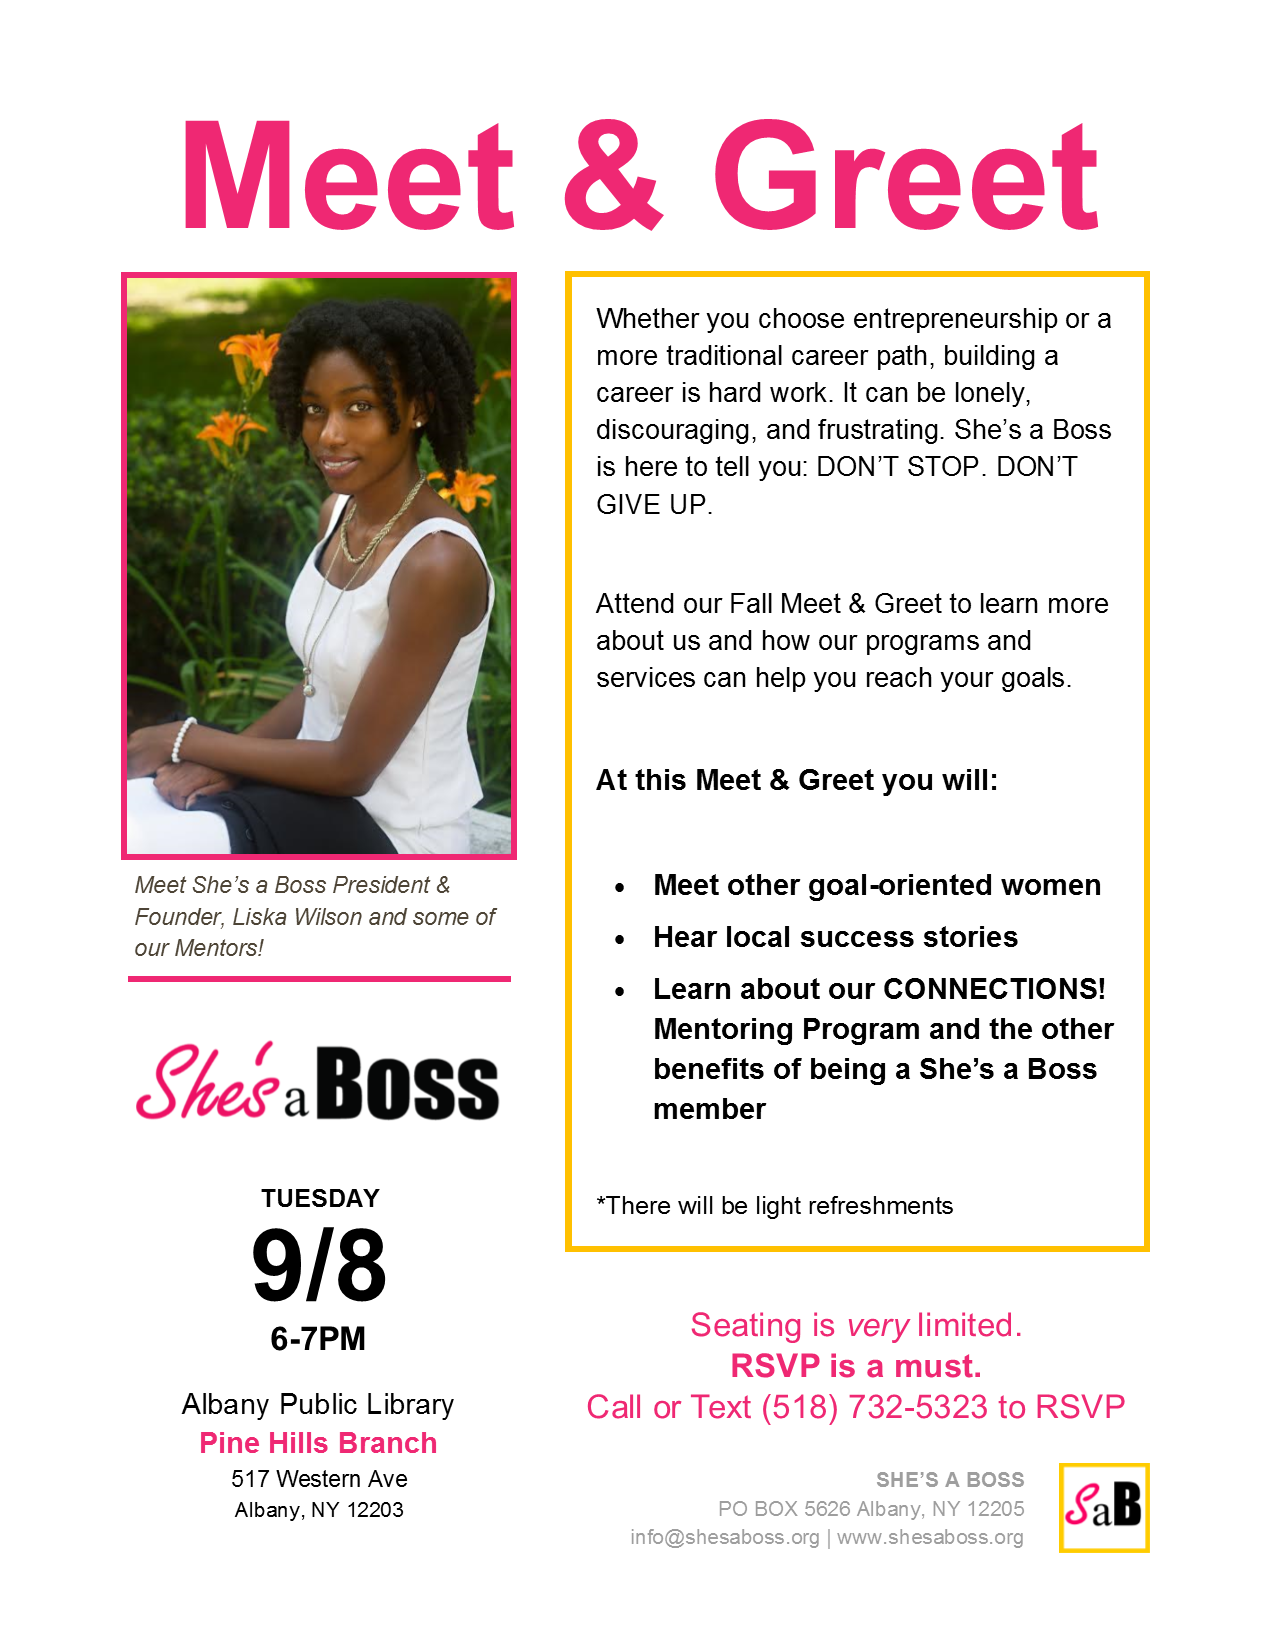 Fall meet greet with shes a boss shes boss m4hsunfo